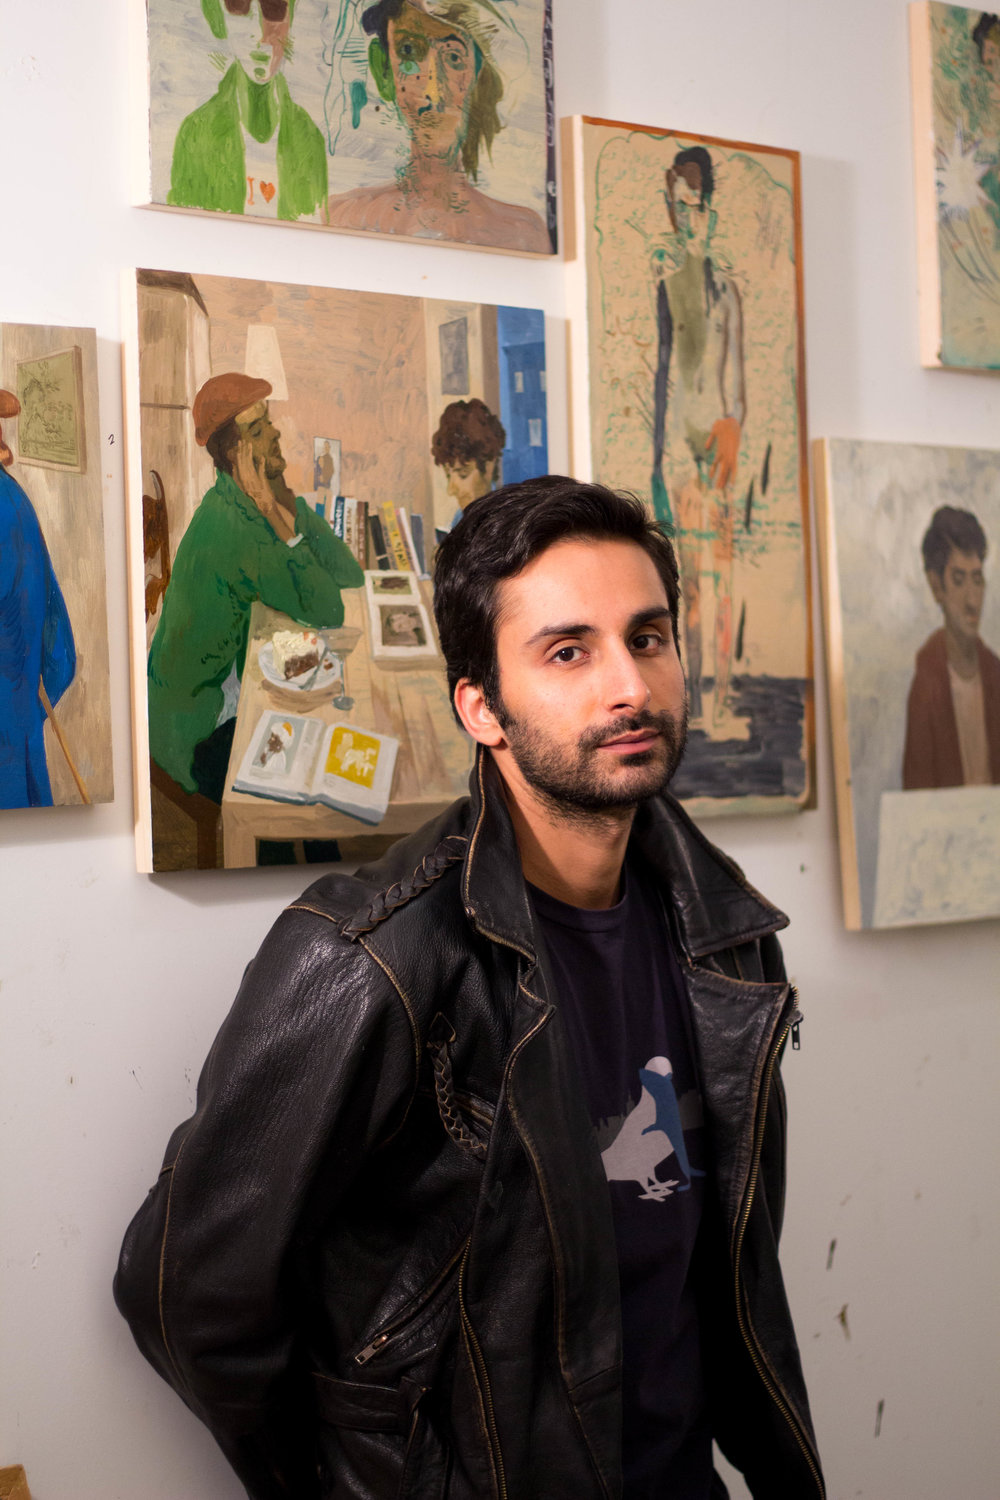 A  visual artist  from Lahore, Pakistan currently living in New York City. His work oscillates between autobiography, Art History, and Pop Culture.